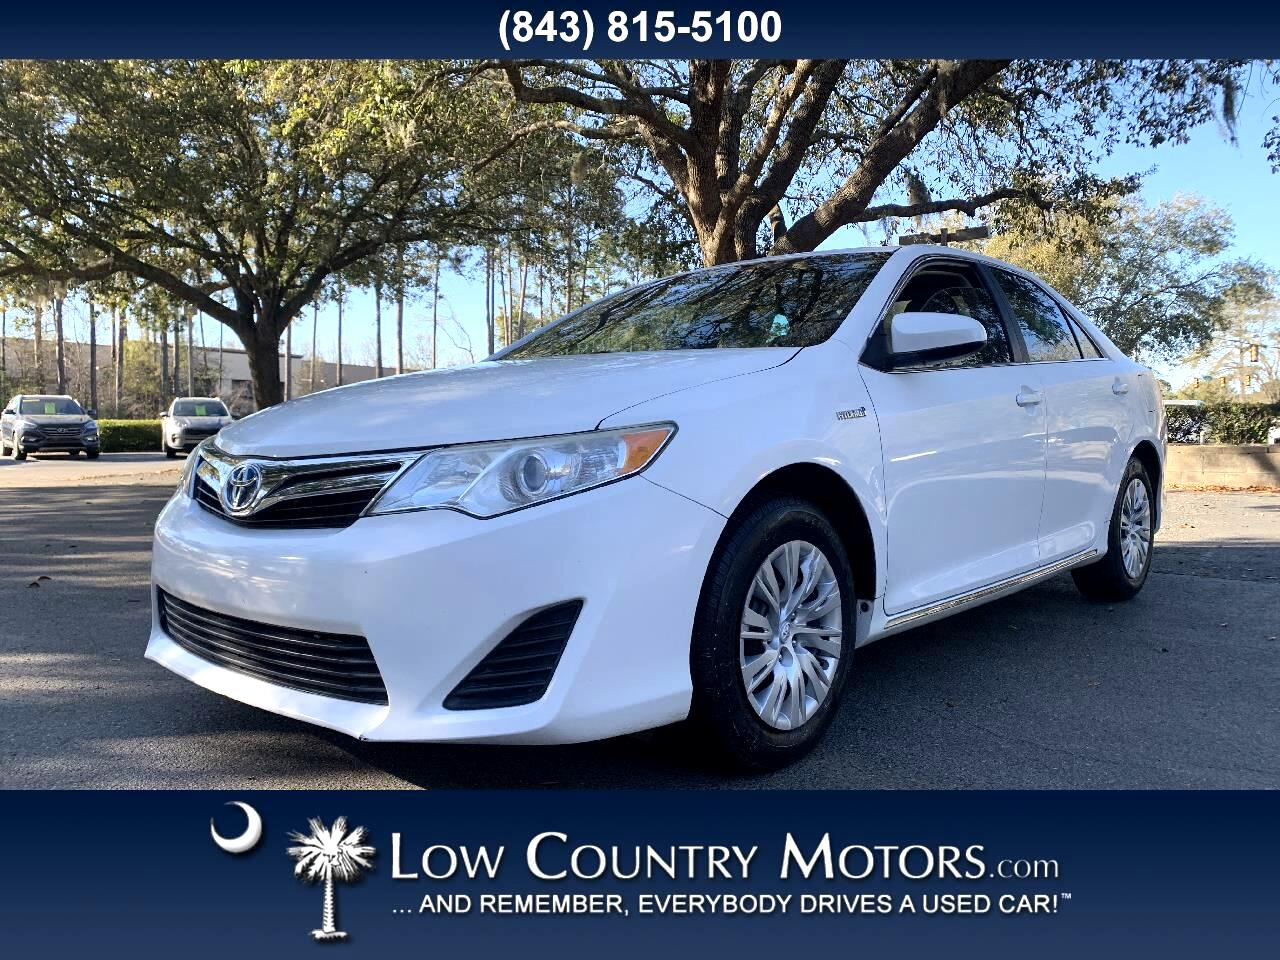 Toyota Camry Hybrid 4dr Sdn LE (Natl) 2012